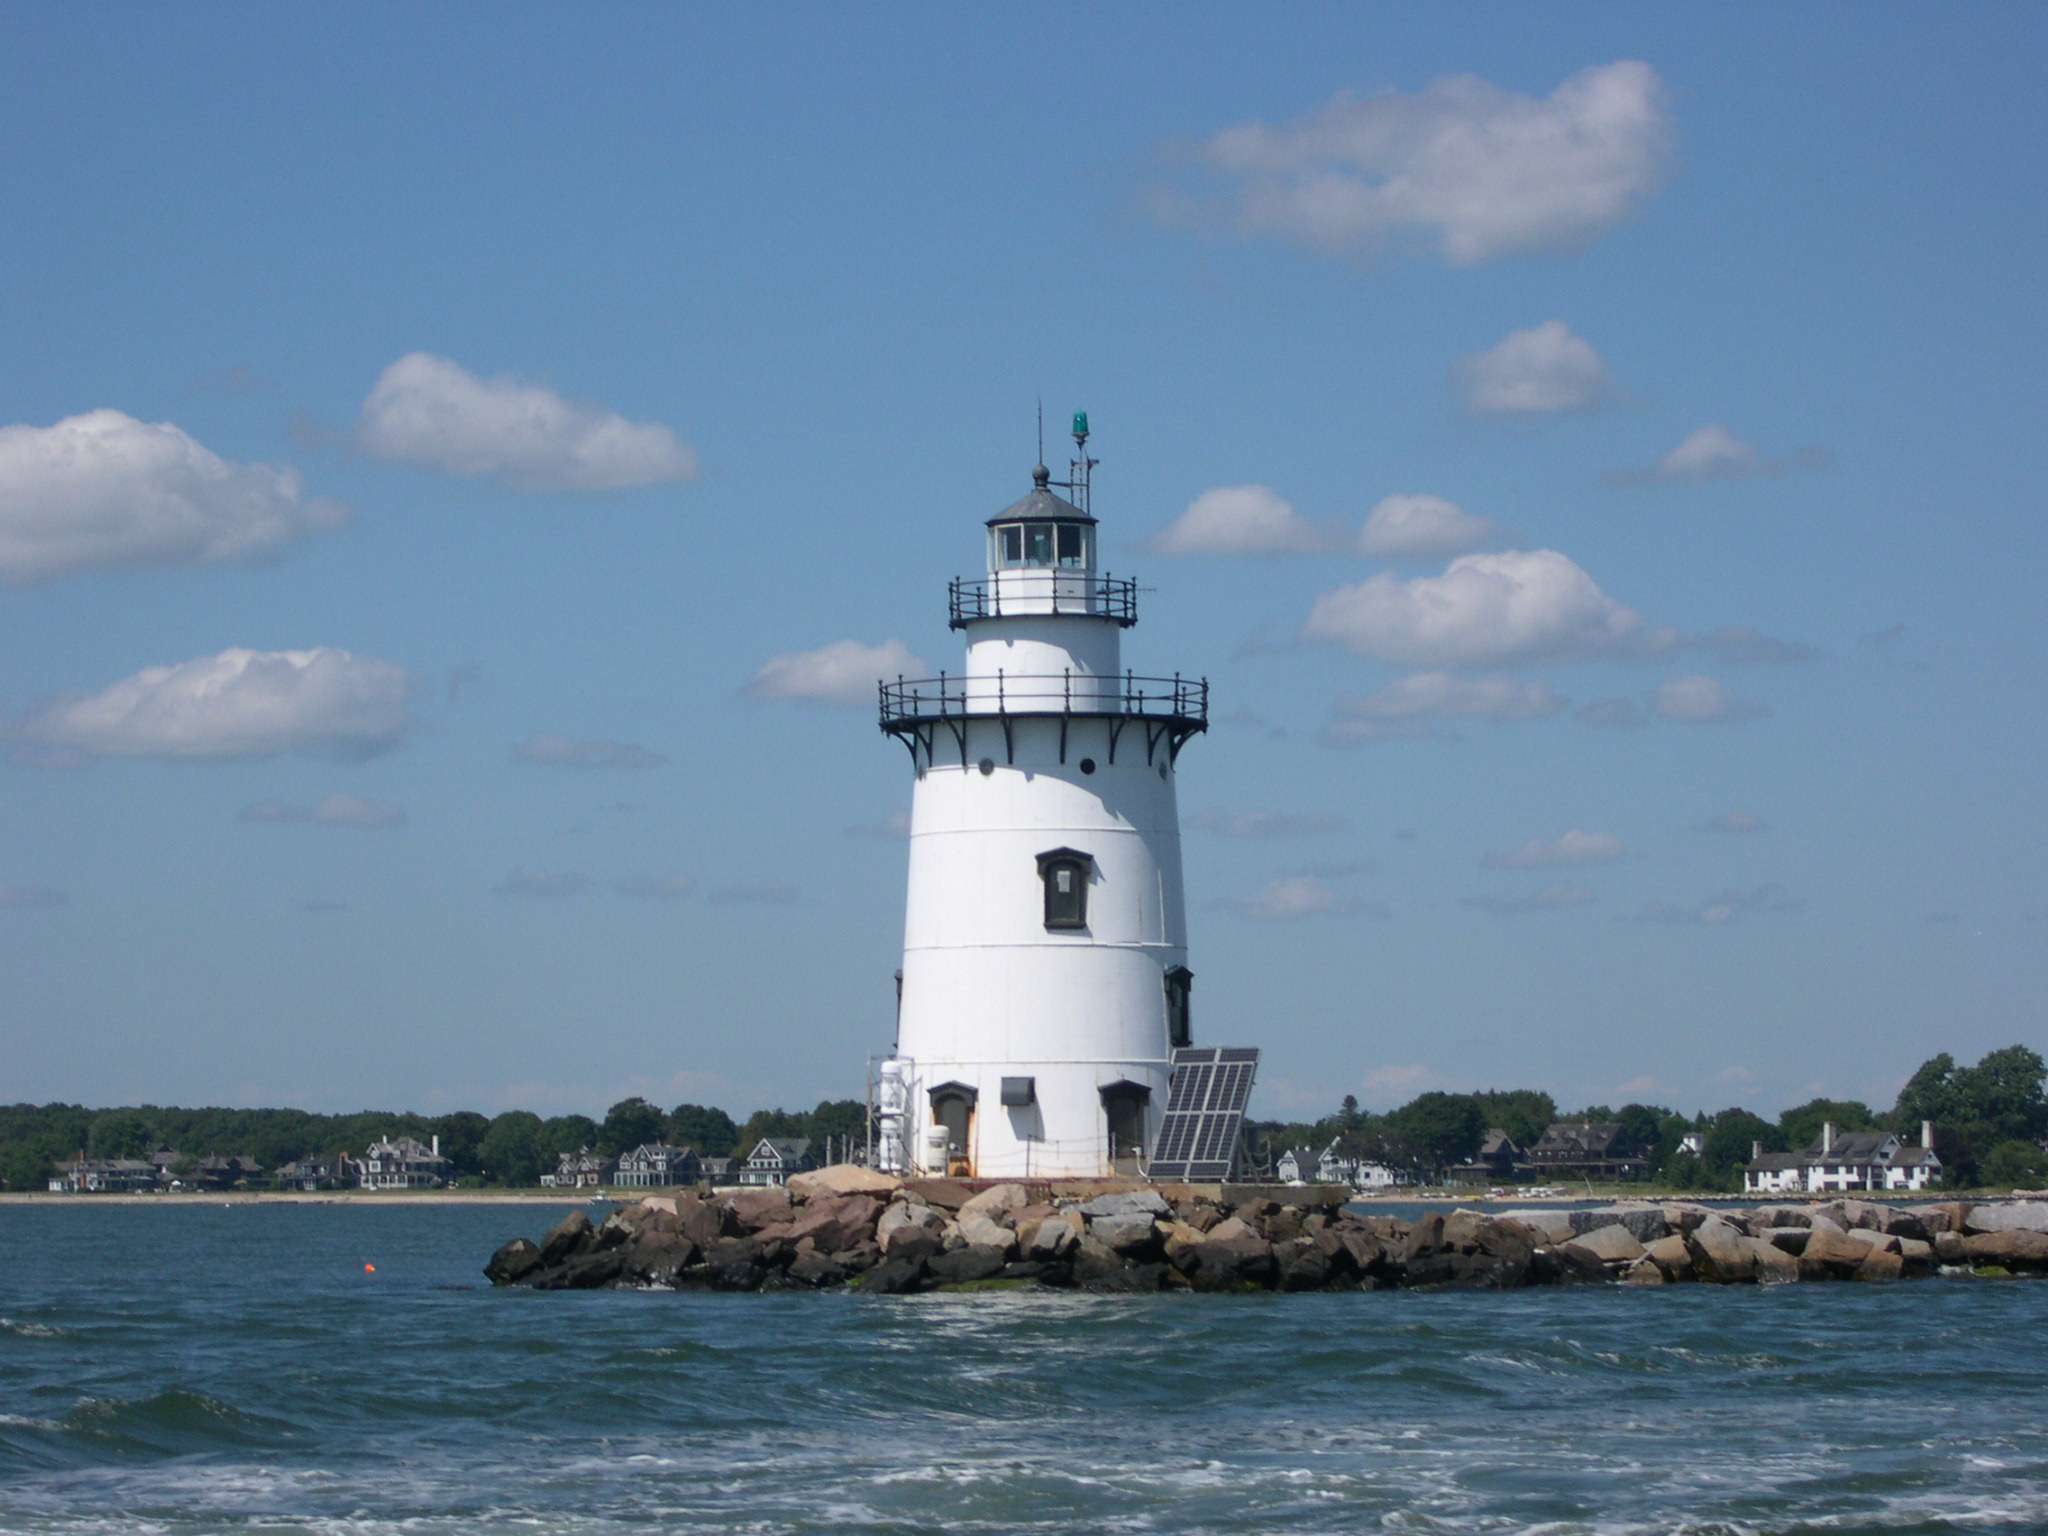 old saybrook Find homes for sale and real estate in old saybrook, ct at realtorcom® search and filter old saybrook homes by price, beds, baths and property type.